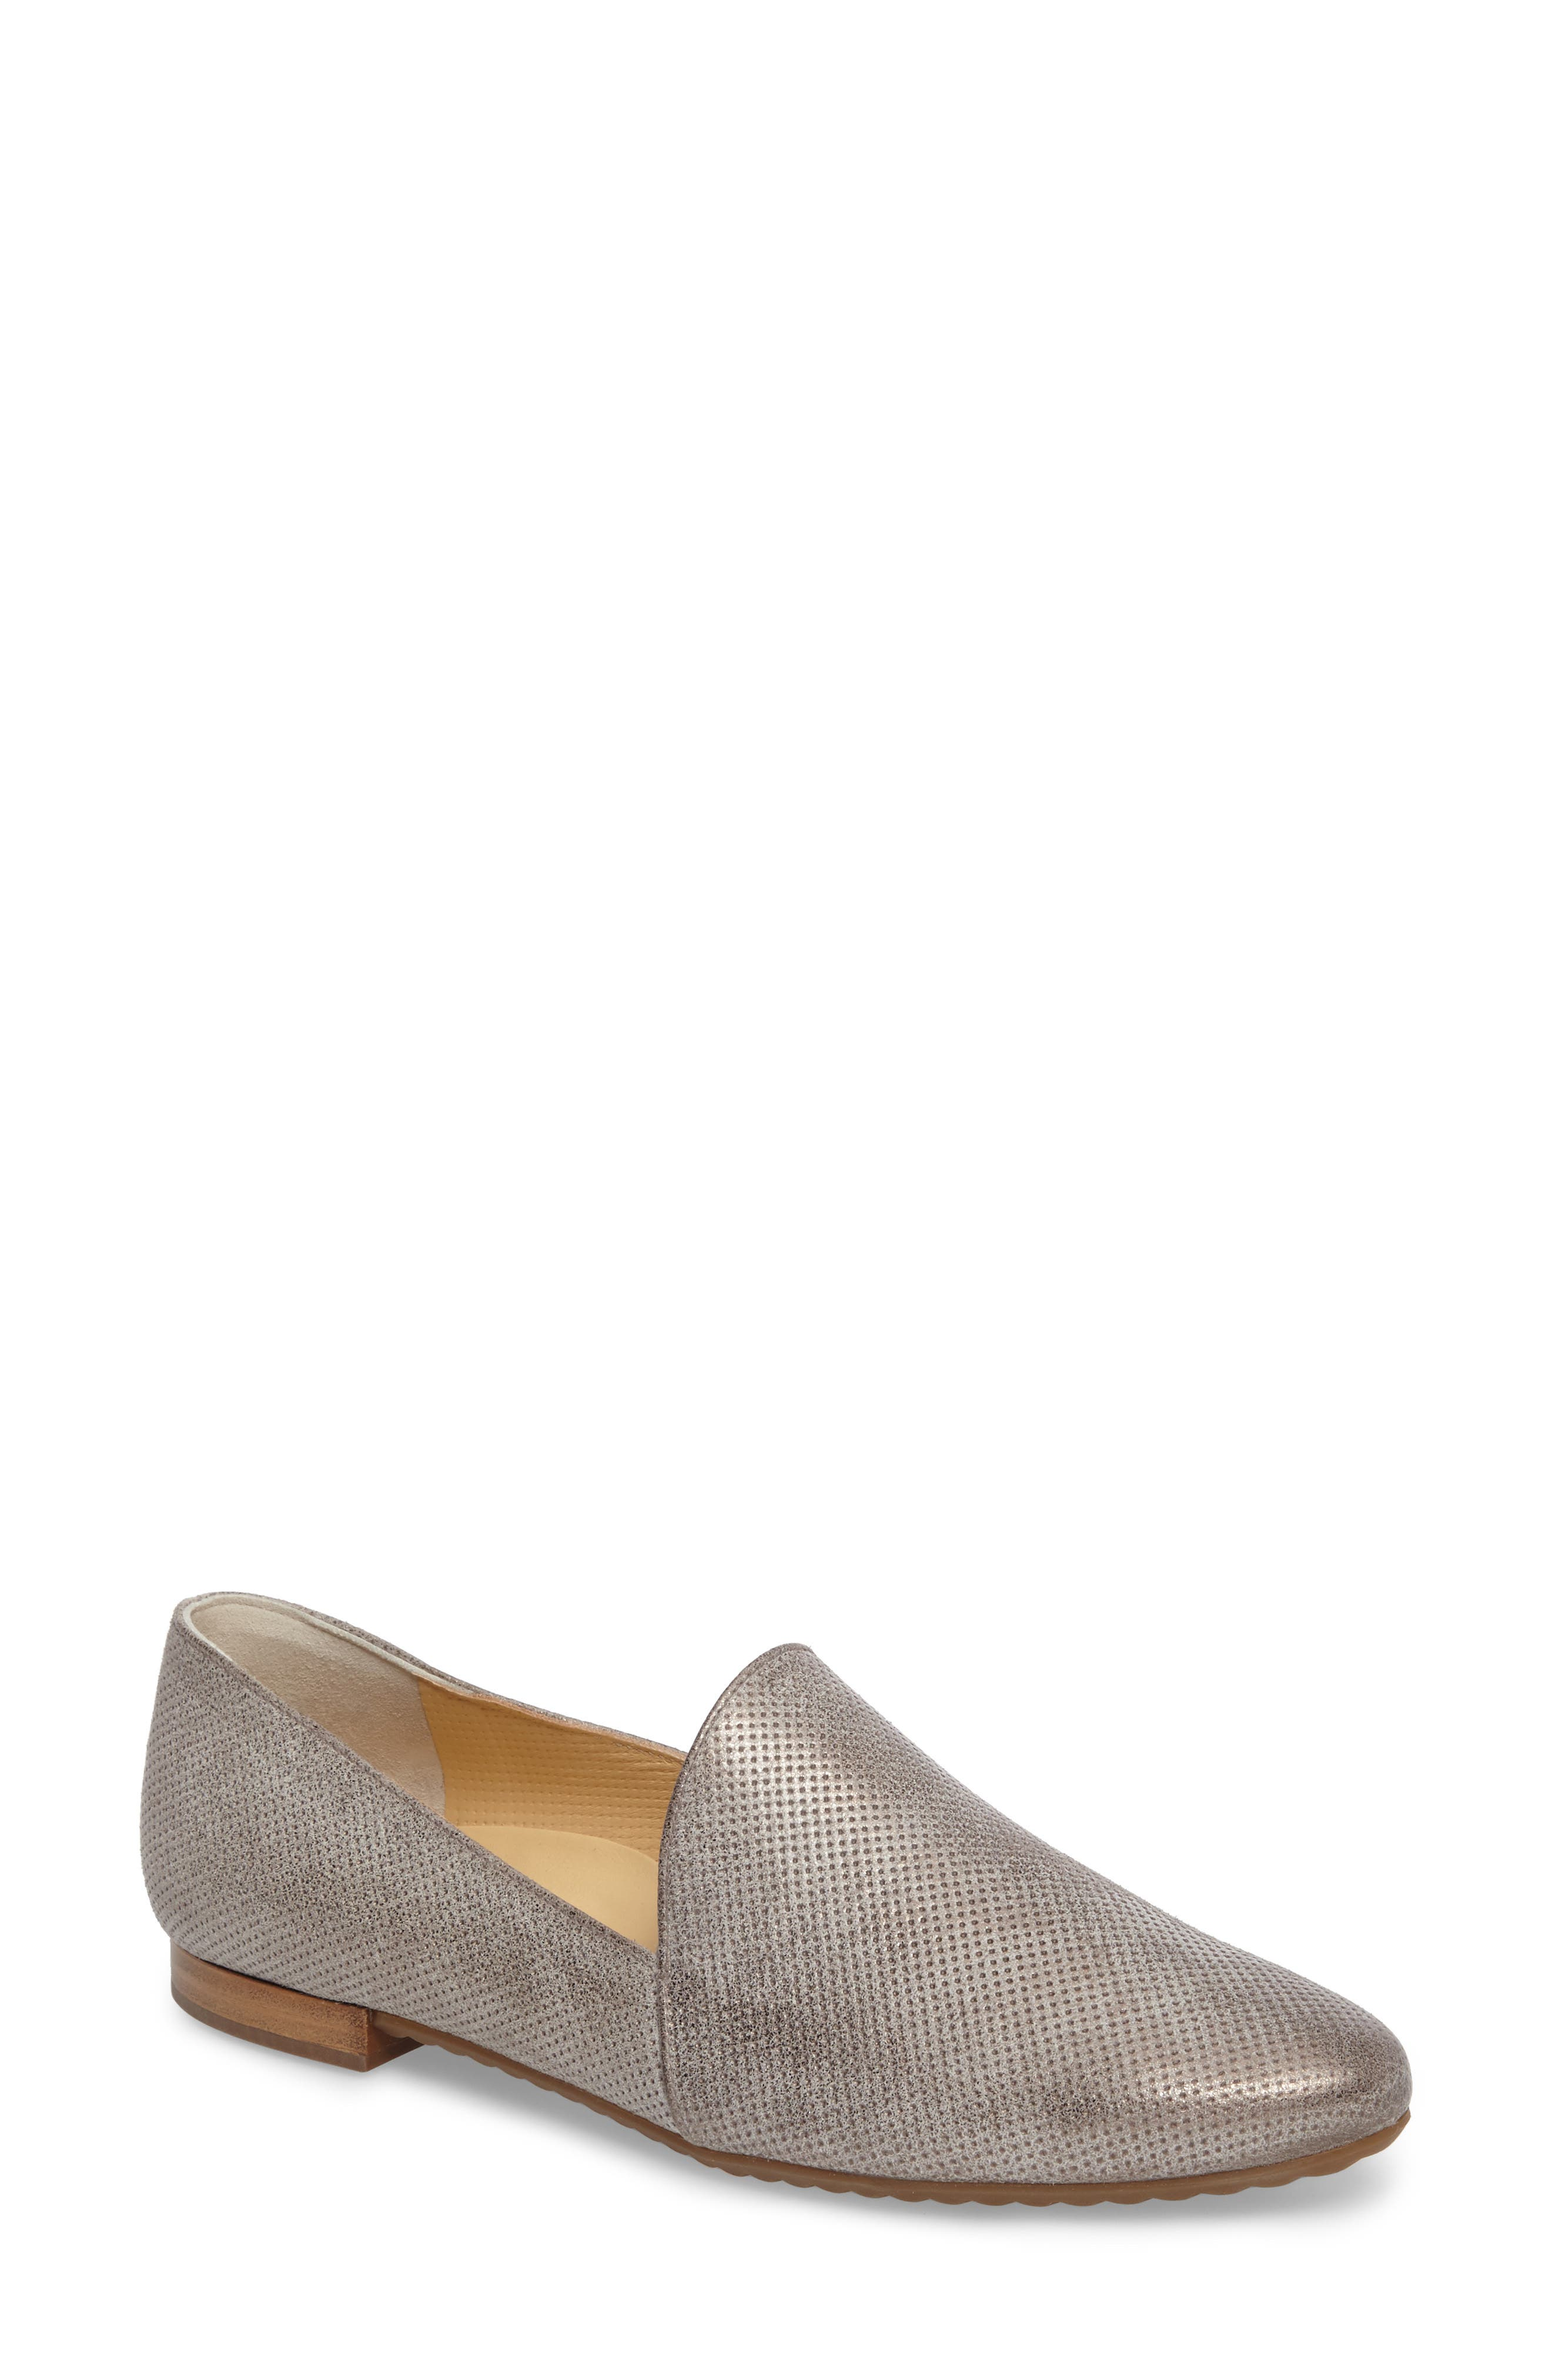 Alternate Image 1 Selected - Paul Green Naomi Loafer (Women)